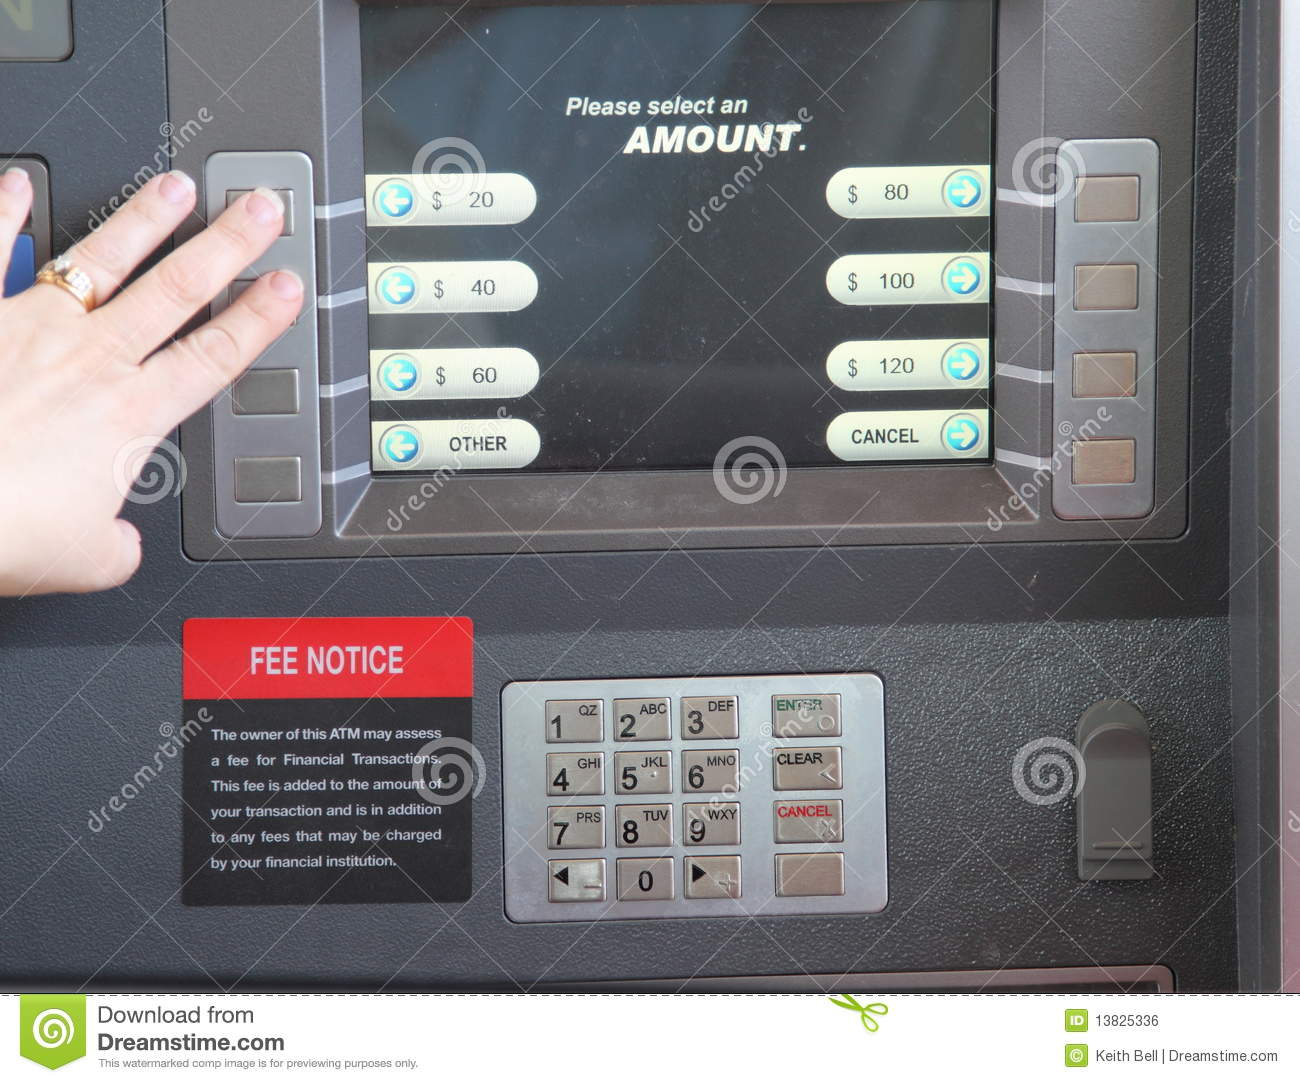 how to get an atm machine